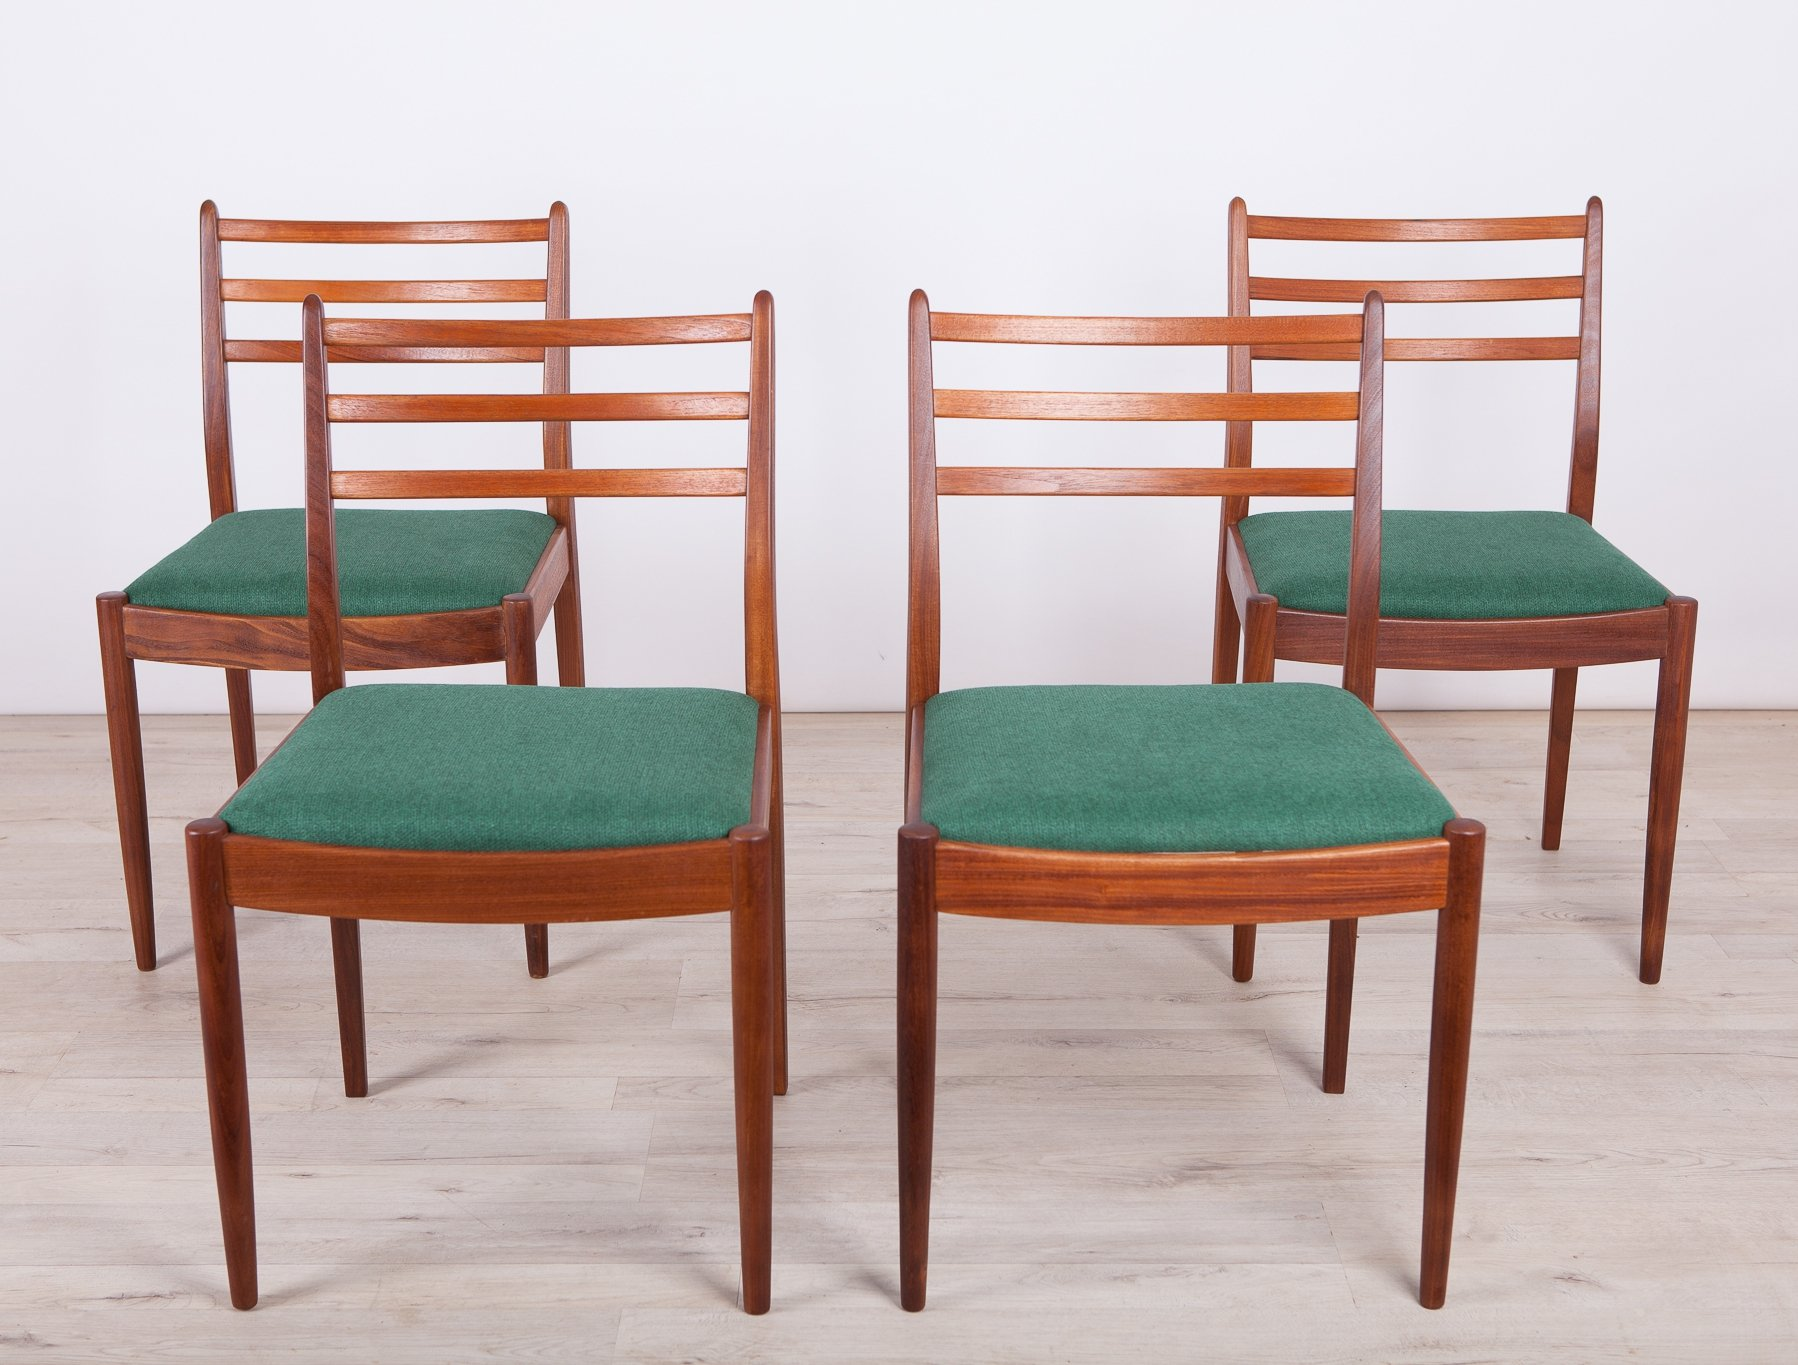 Set Of 4 Vintage Teak Dining Chairs By Victor Wilkins For G Plan 1960s 121644